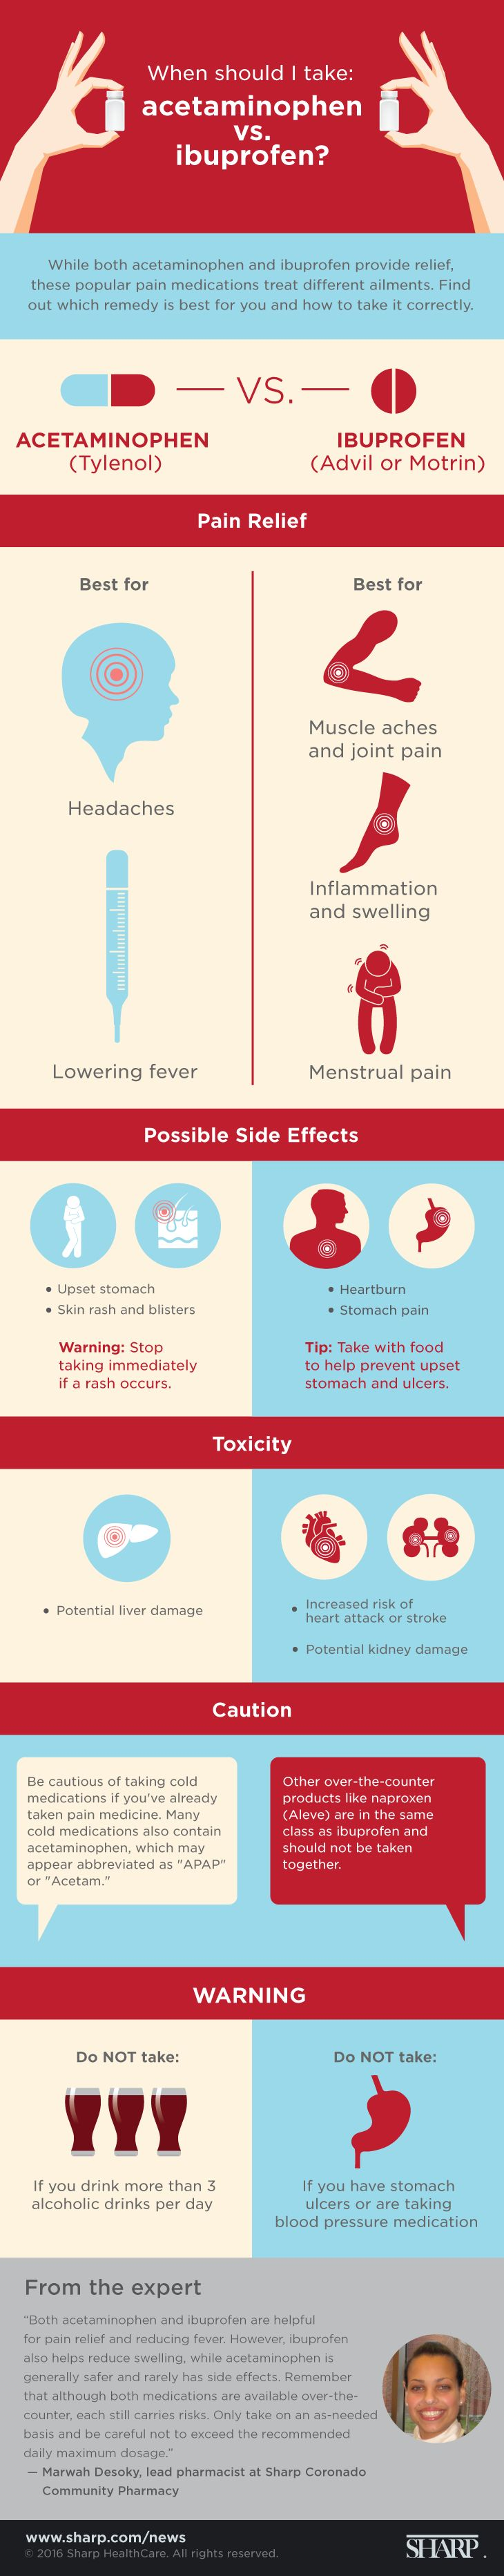 Acetaminophen vs. ibuprofen (infographic)